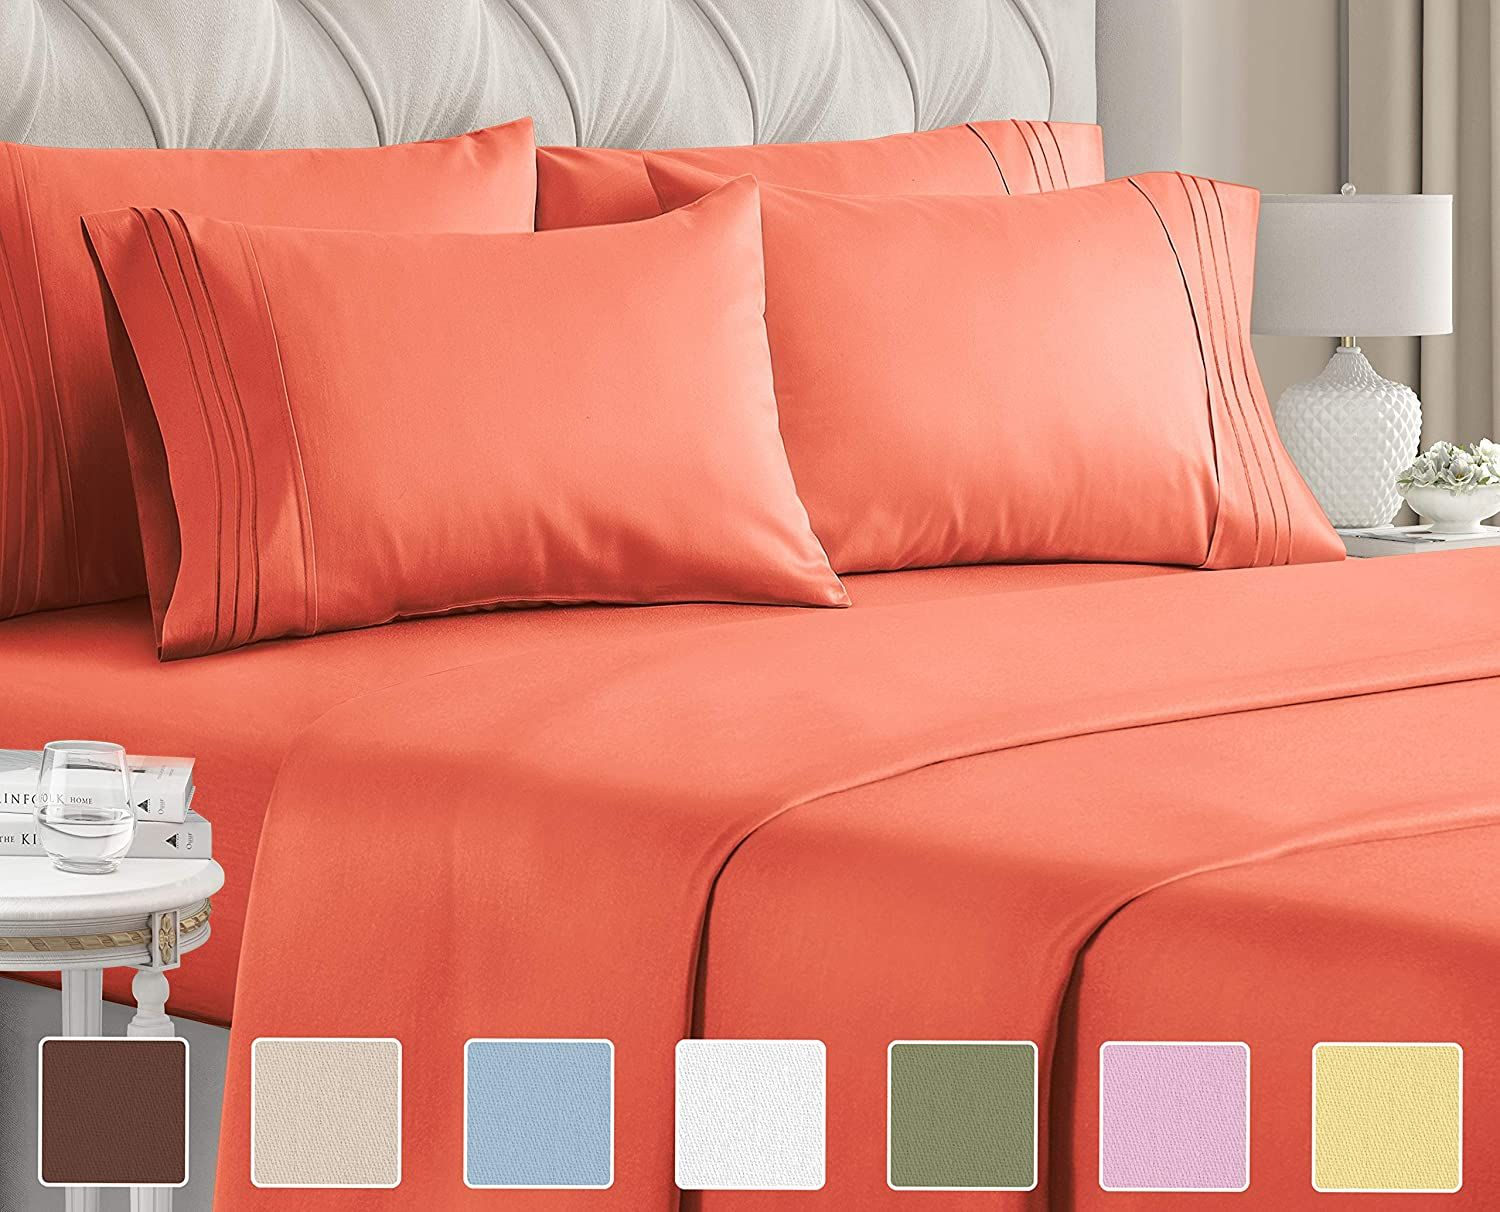 Queen Size Sheet Set 6 Piece Set Hotel Luxury Bed Sheets Extra Soft Deep Pockets Easy Fit Breatha Bed Sheet Sets Queen Size Sheets Sheet Sets Queen 18 inch deep pocket queen sheets